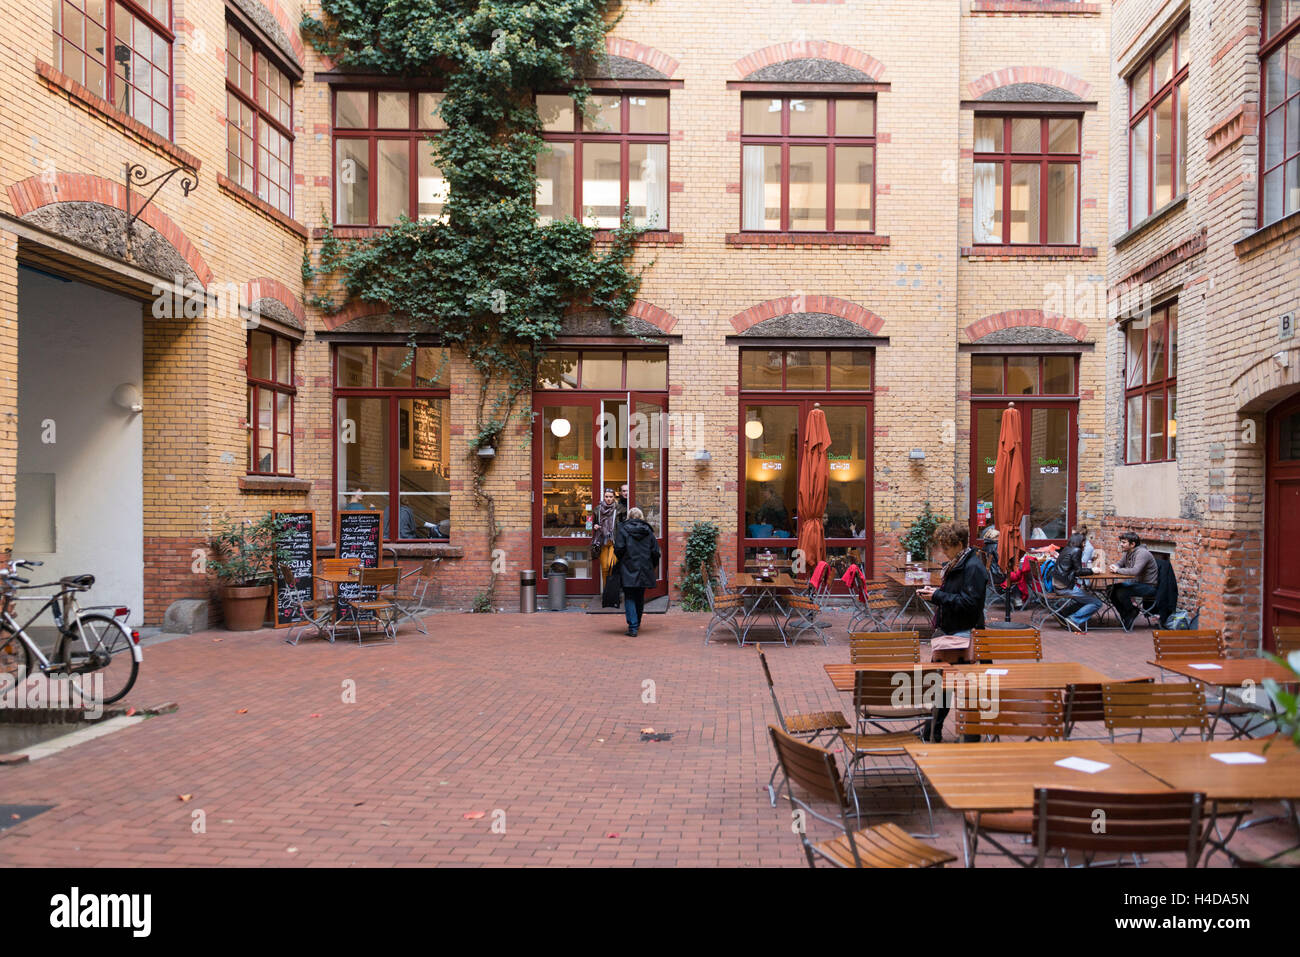 Germany, Berlin, in the Sophie-Gips-Höfe (courts) - Stock Image